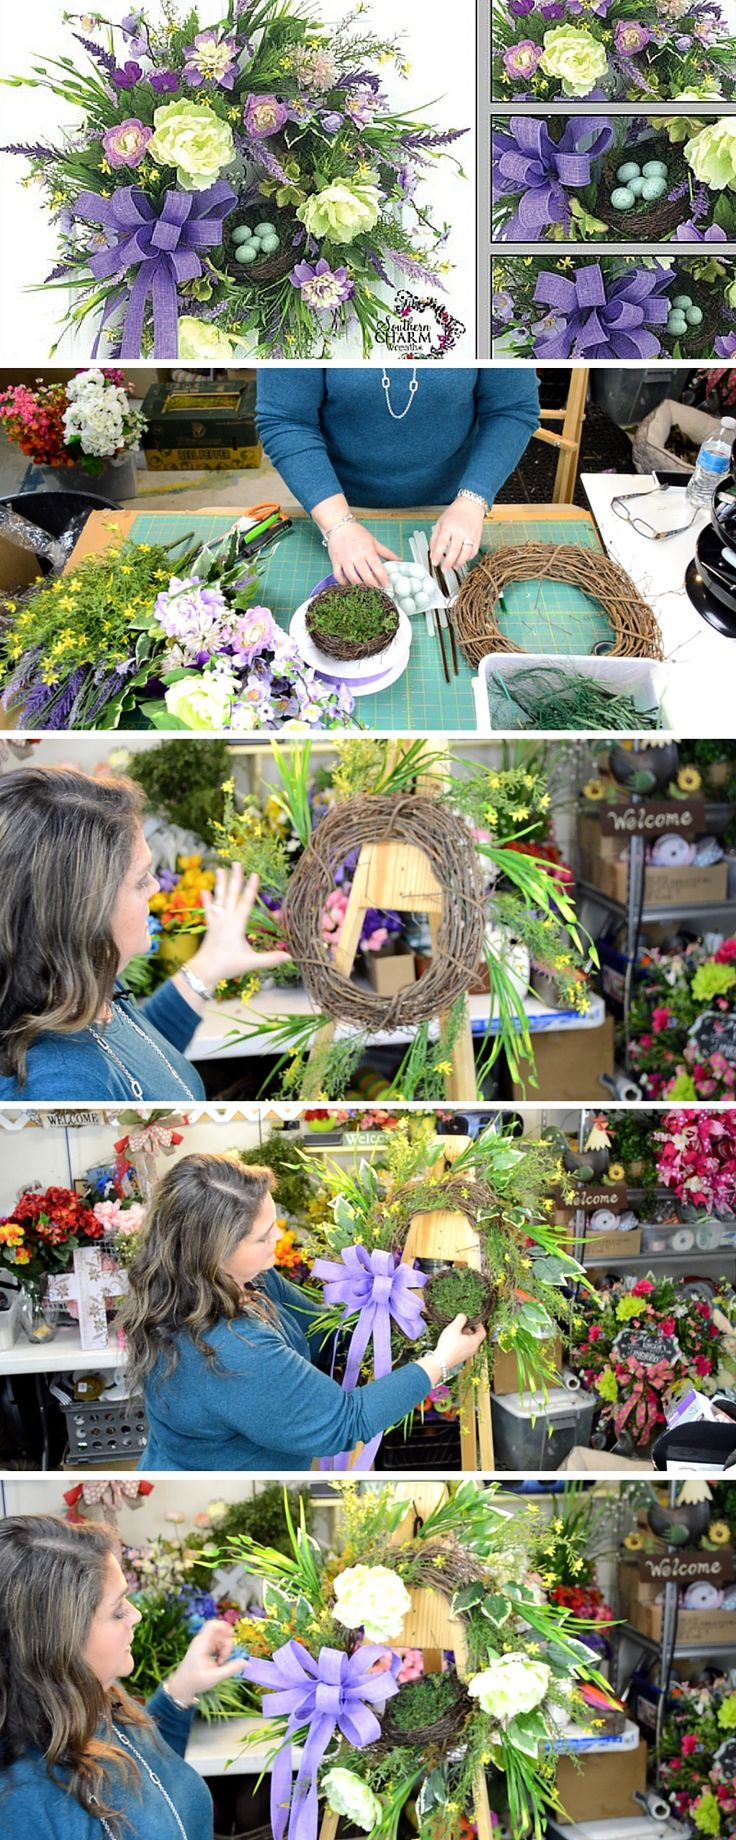 She teaches you the formula for creating a beautiful silk flower spring wreath.